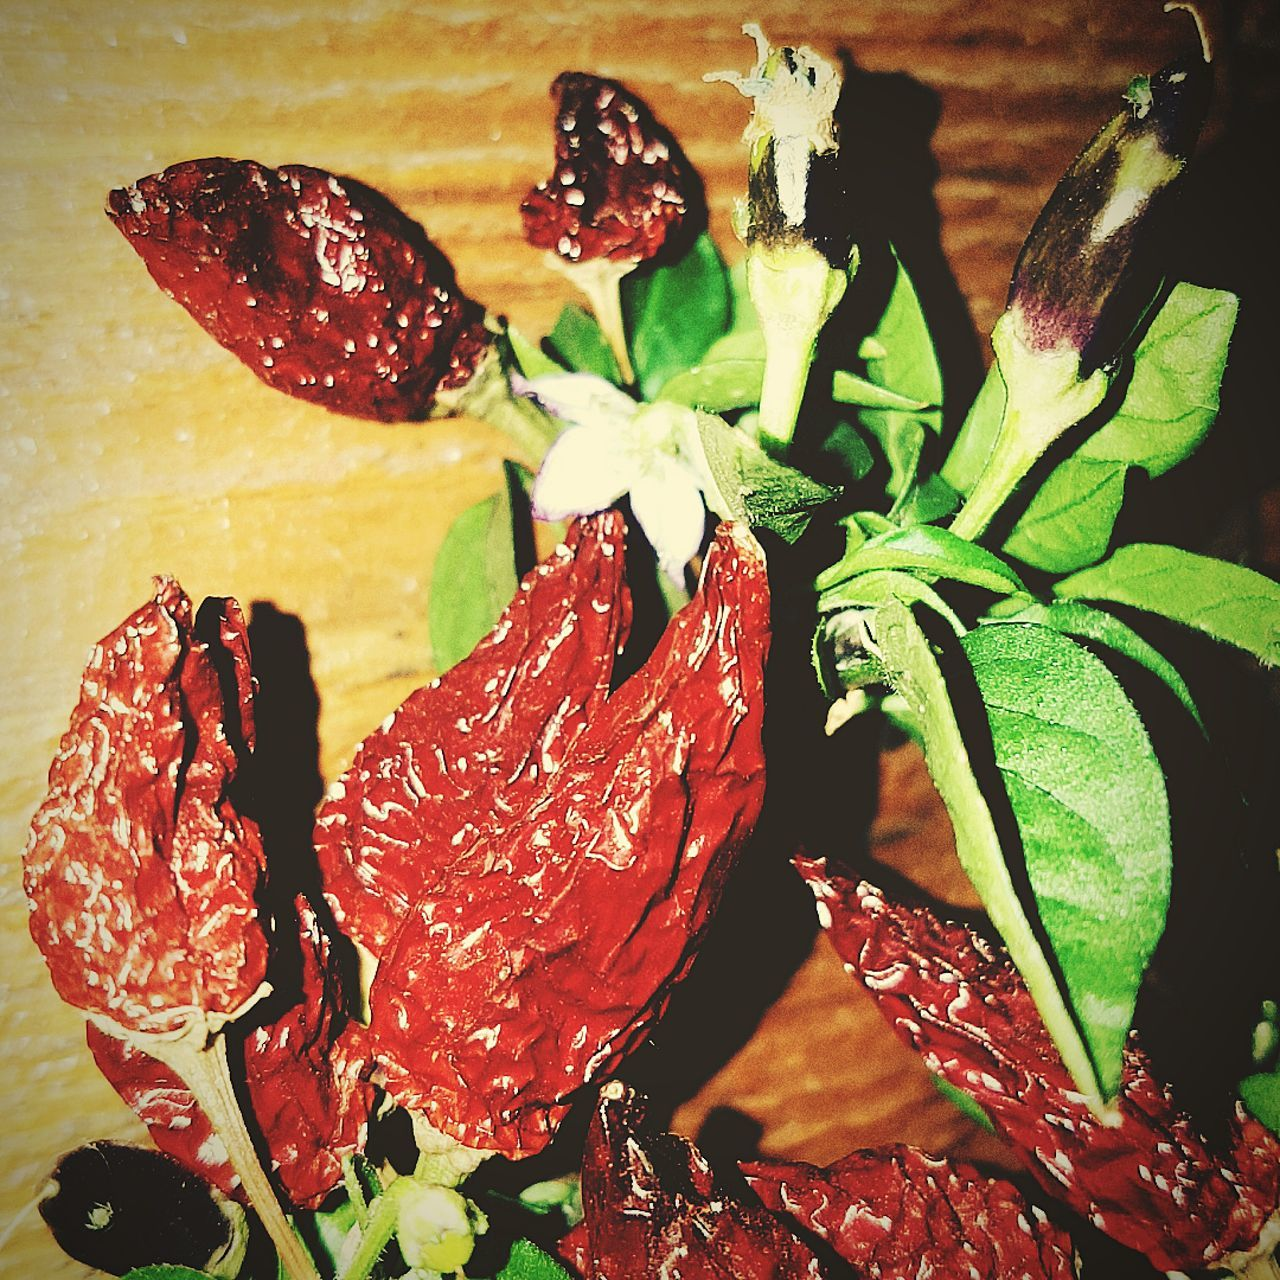 Chili Pepper Spices Food Chili Peppers RedChiliPeper Food No People Close-up Chili Plant Planted Redhotchillipeppers